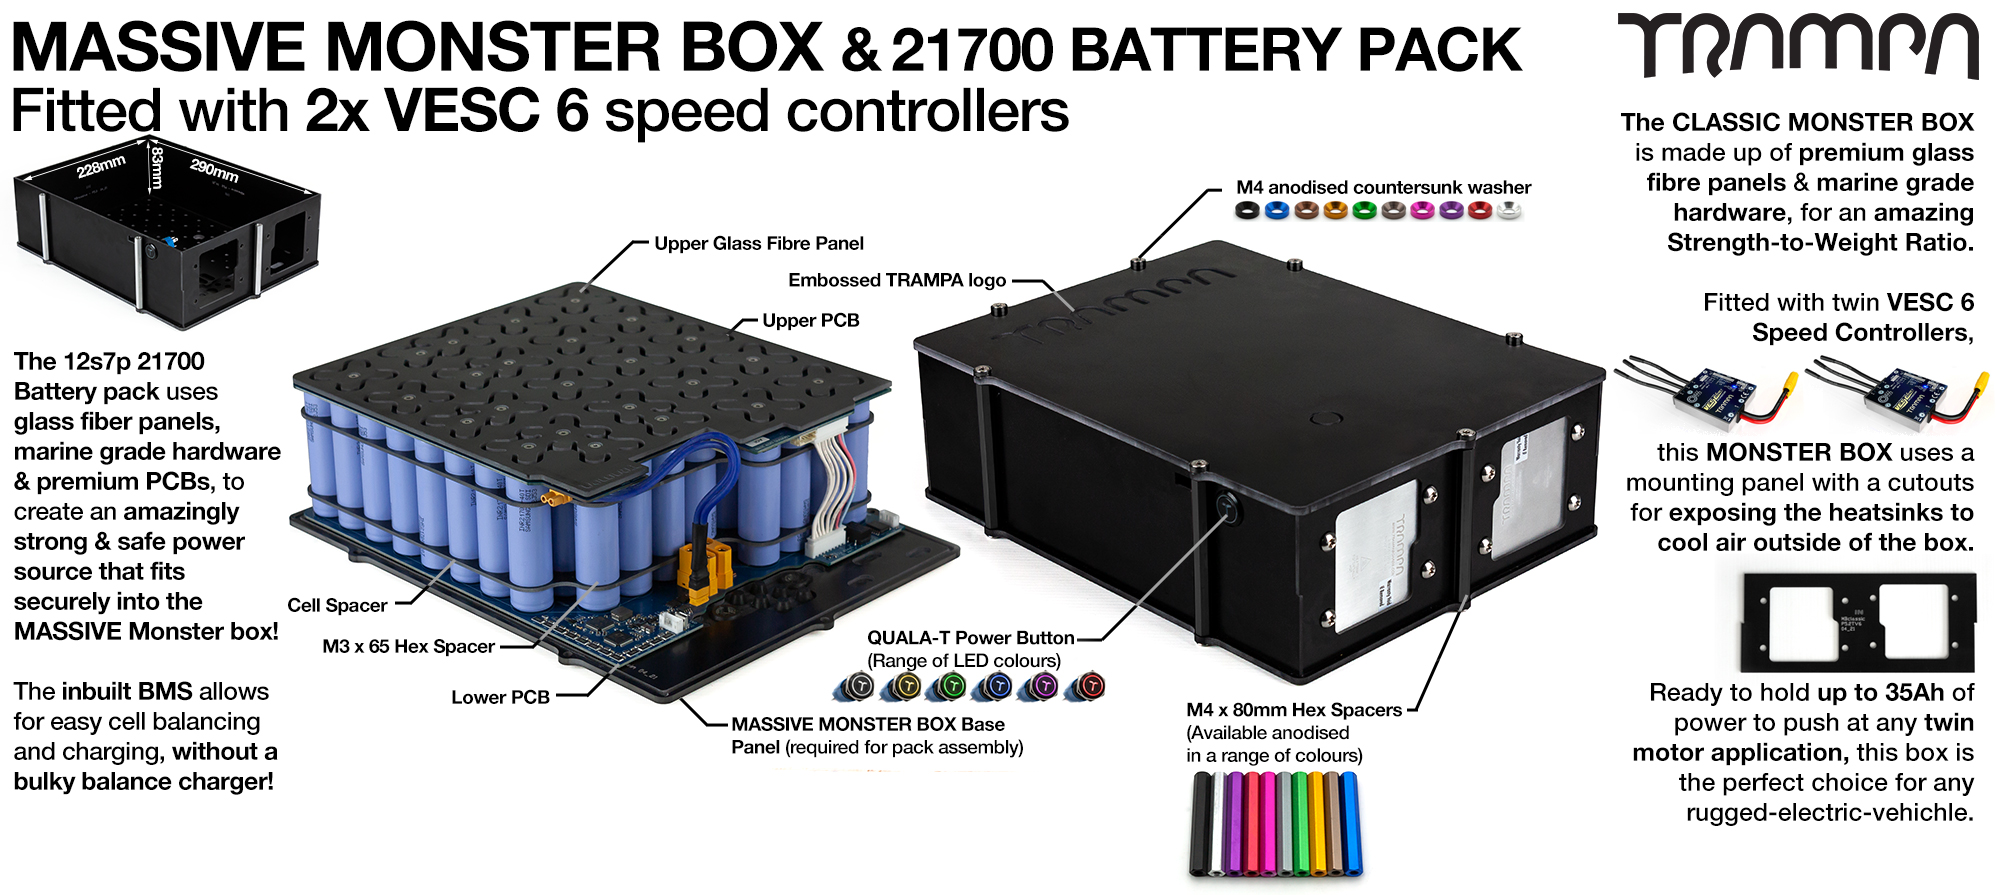 21700 MASSIVE MONSTER Box with 21700 PCB Pack with 2x VESC 6 & 84x 21700 cells 12s7p = 35Ah - Specifically made to work in conjunction with TRAMPA's Electric Decks but can be adapted to fit anything - UK Customers only